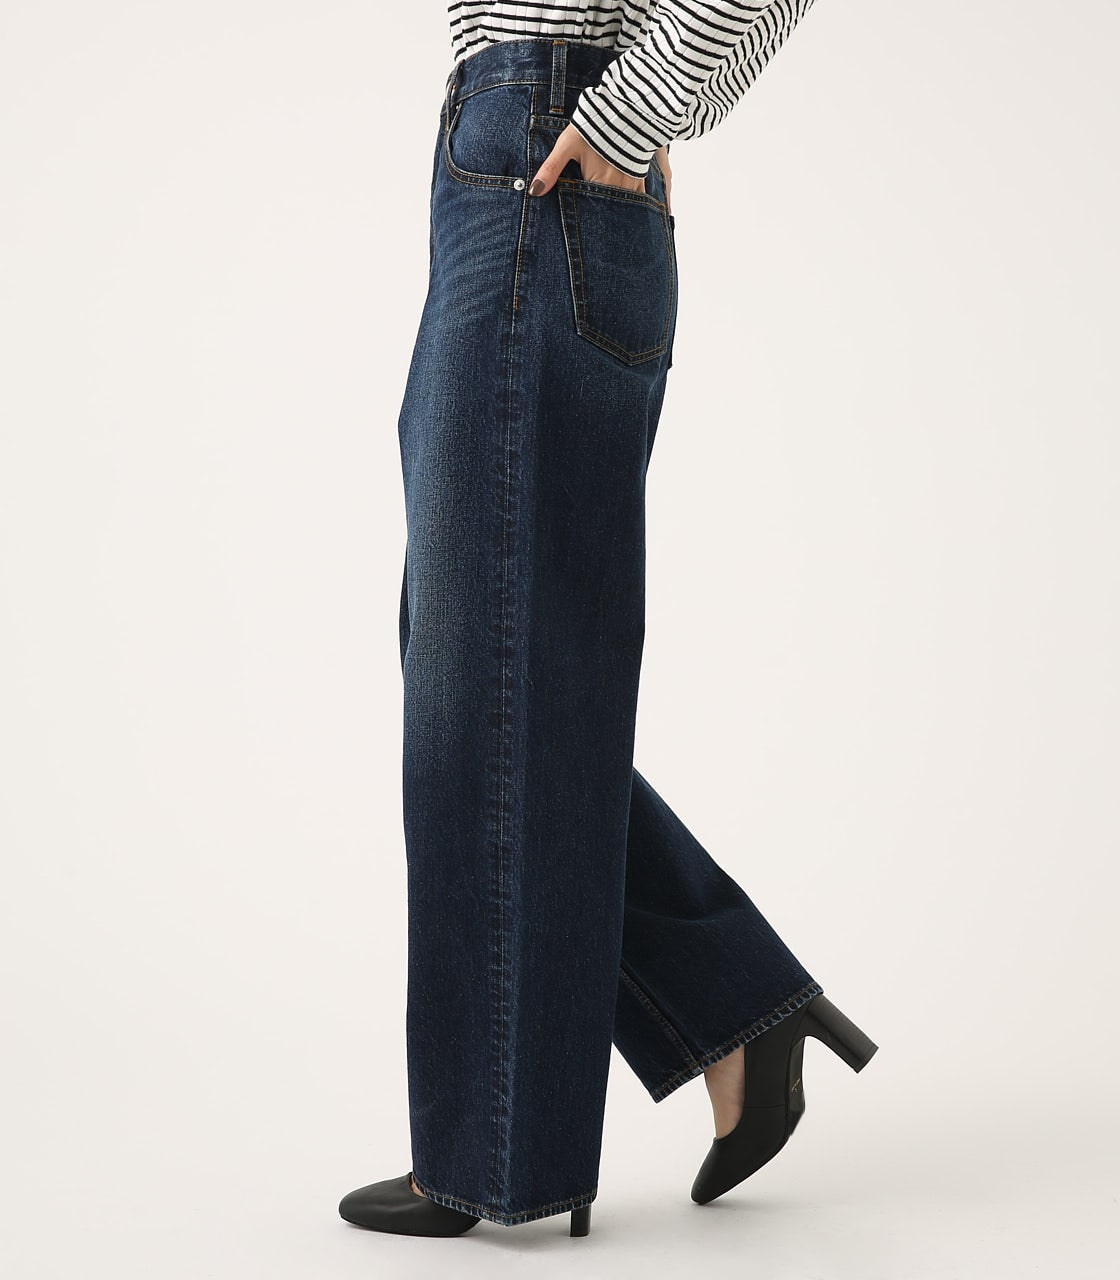 HIGH WAIST DENIM WIDE 詳細画像 D/BLU 2